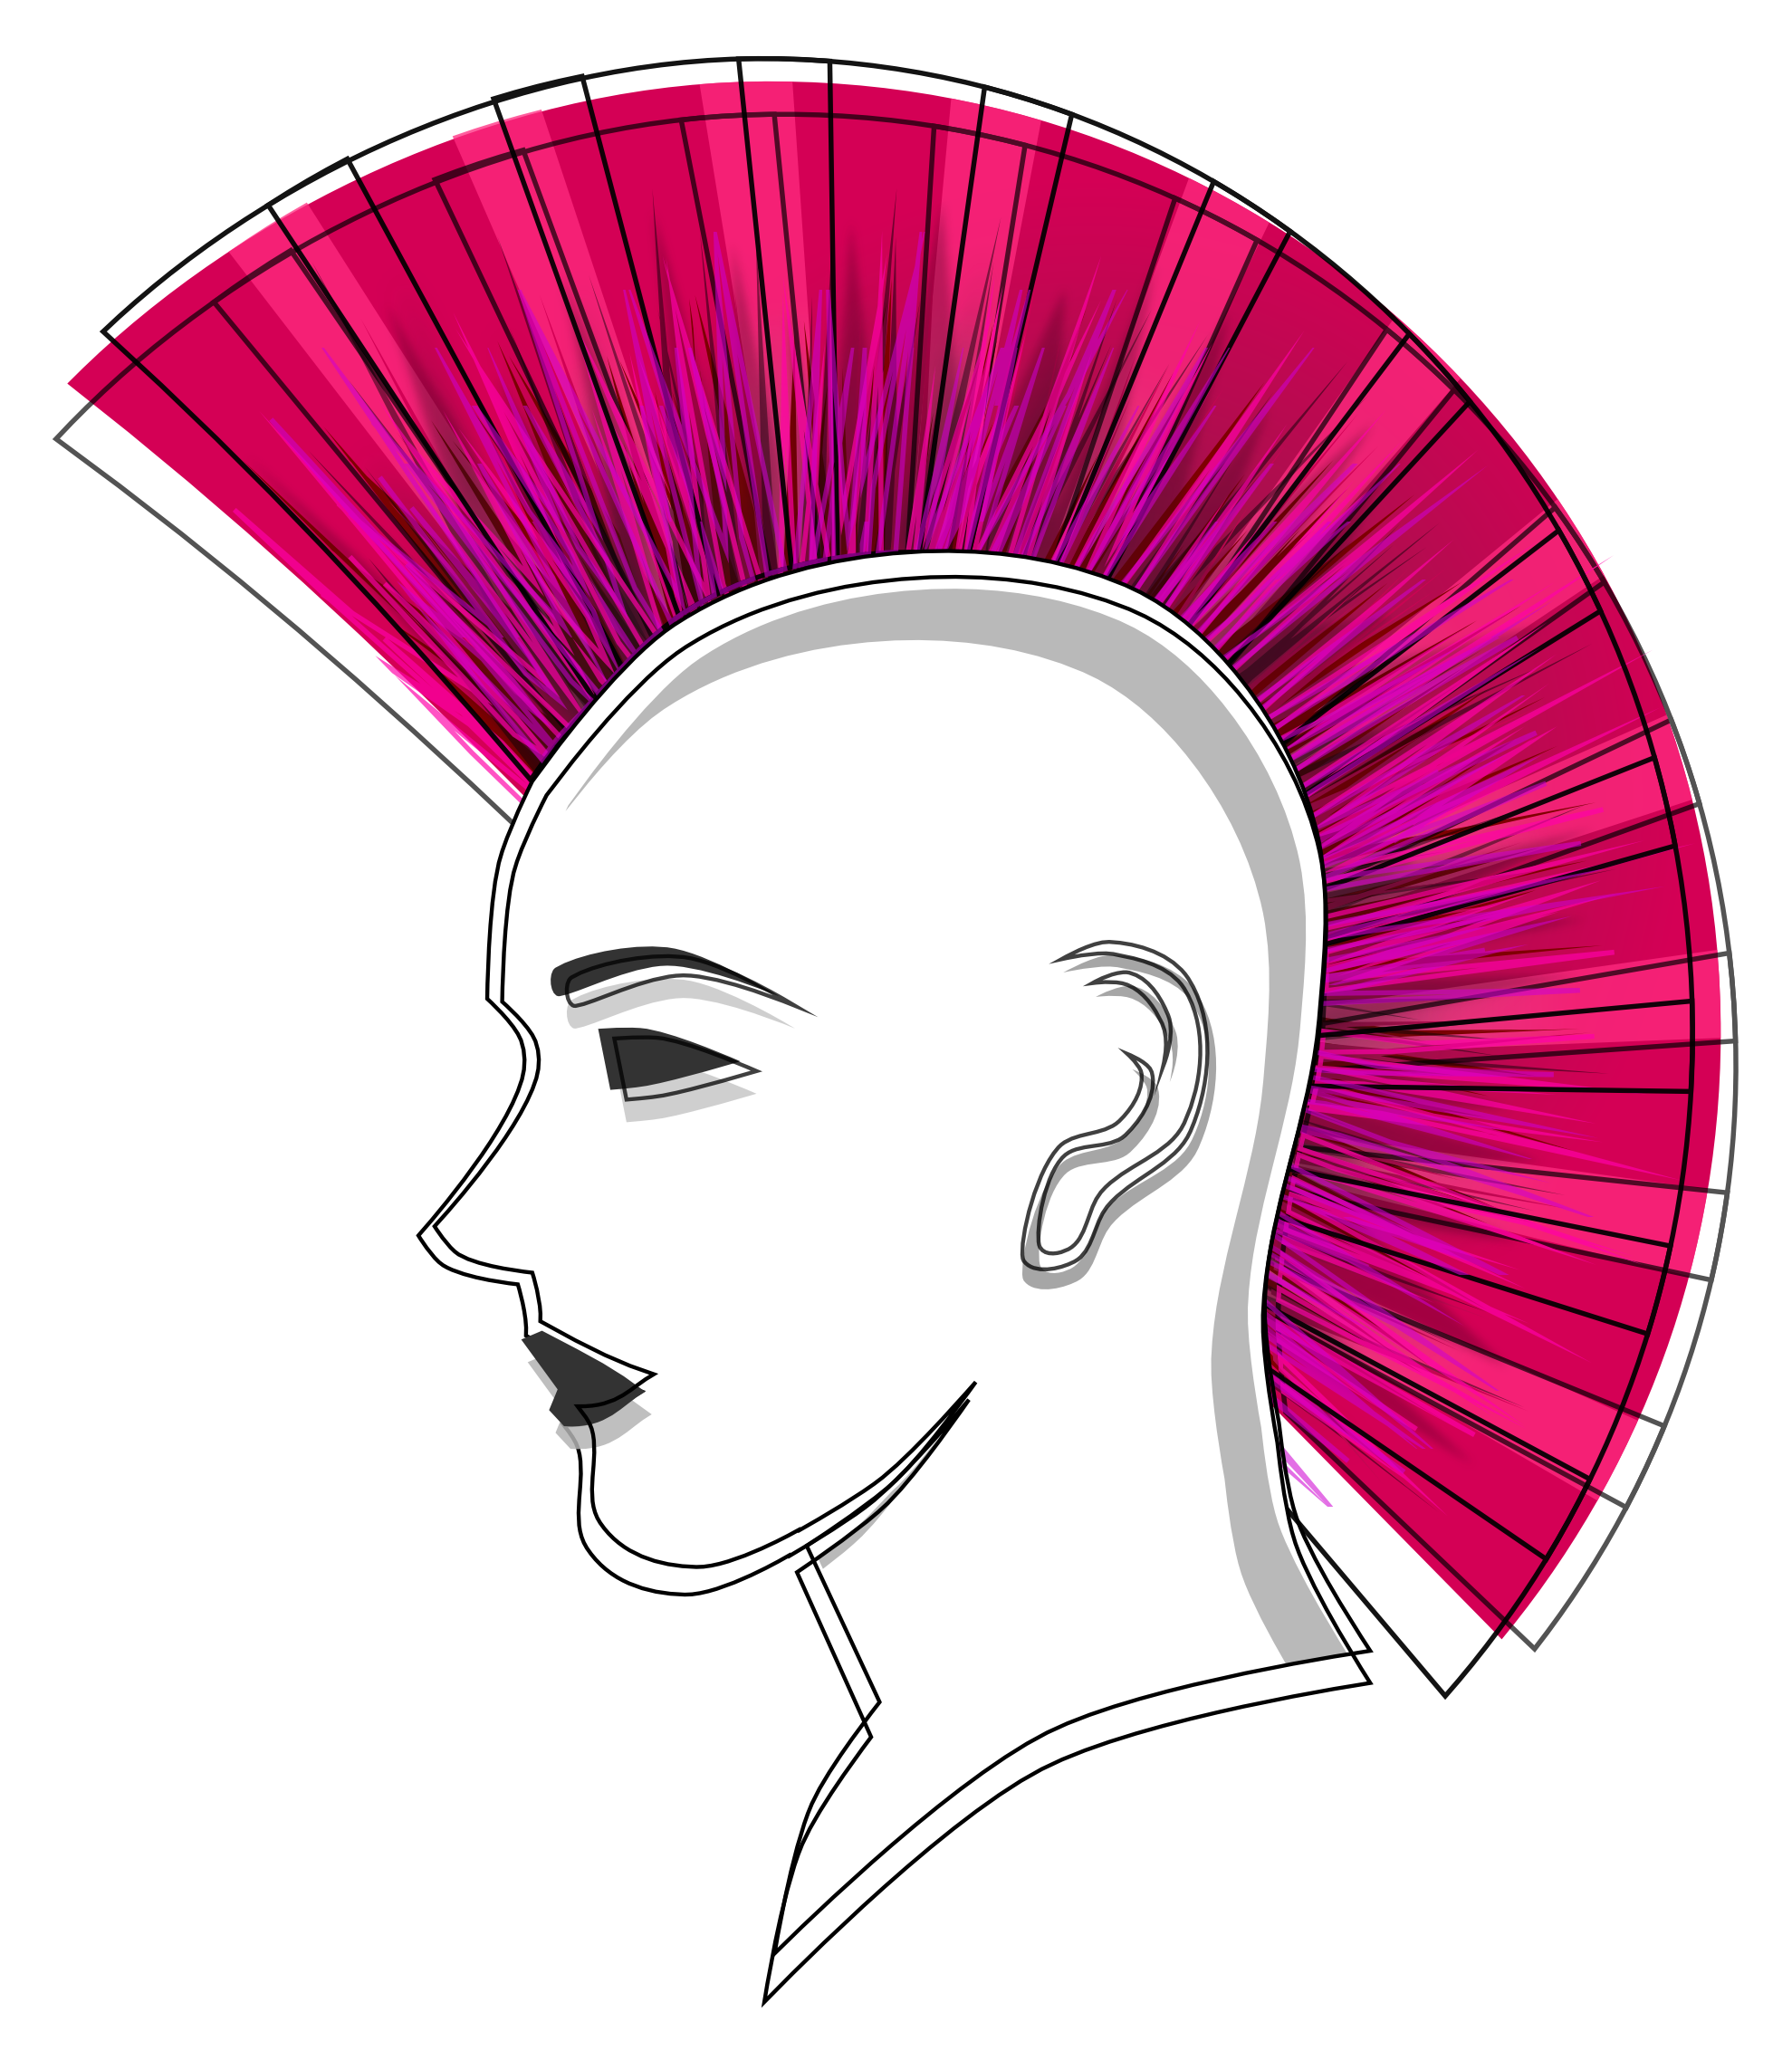 Punk clipart #9, Download drawings